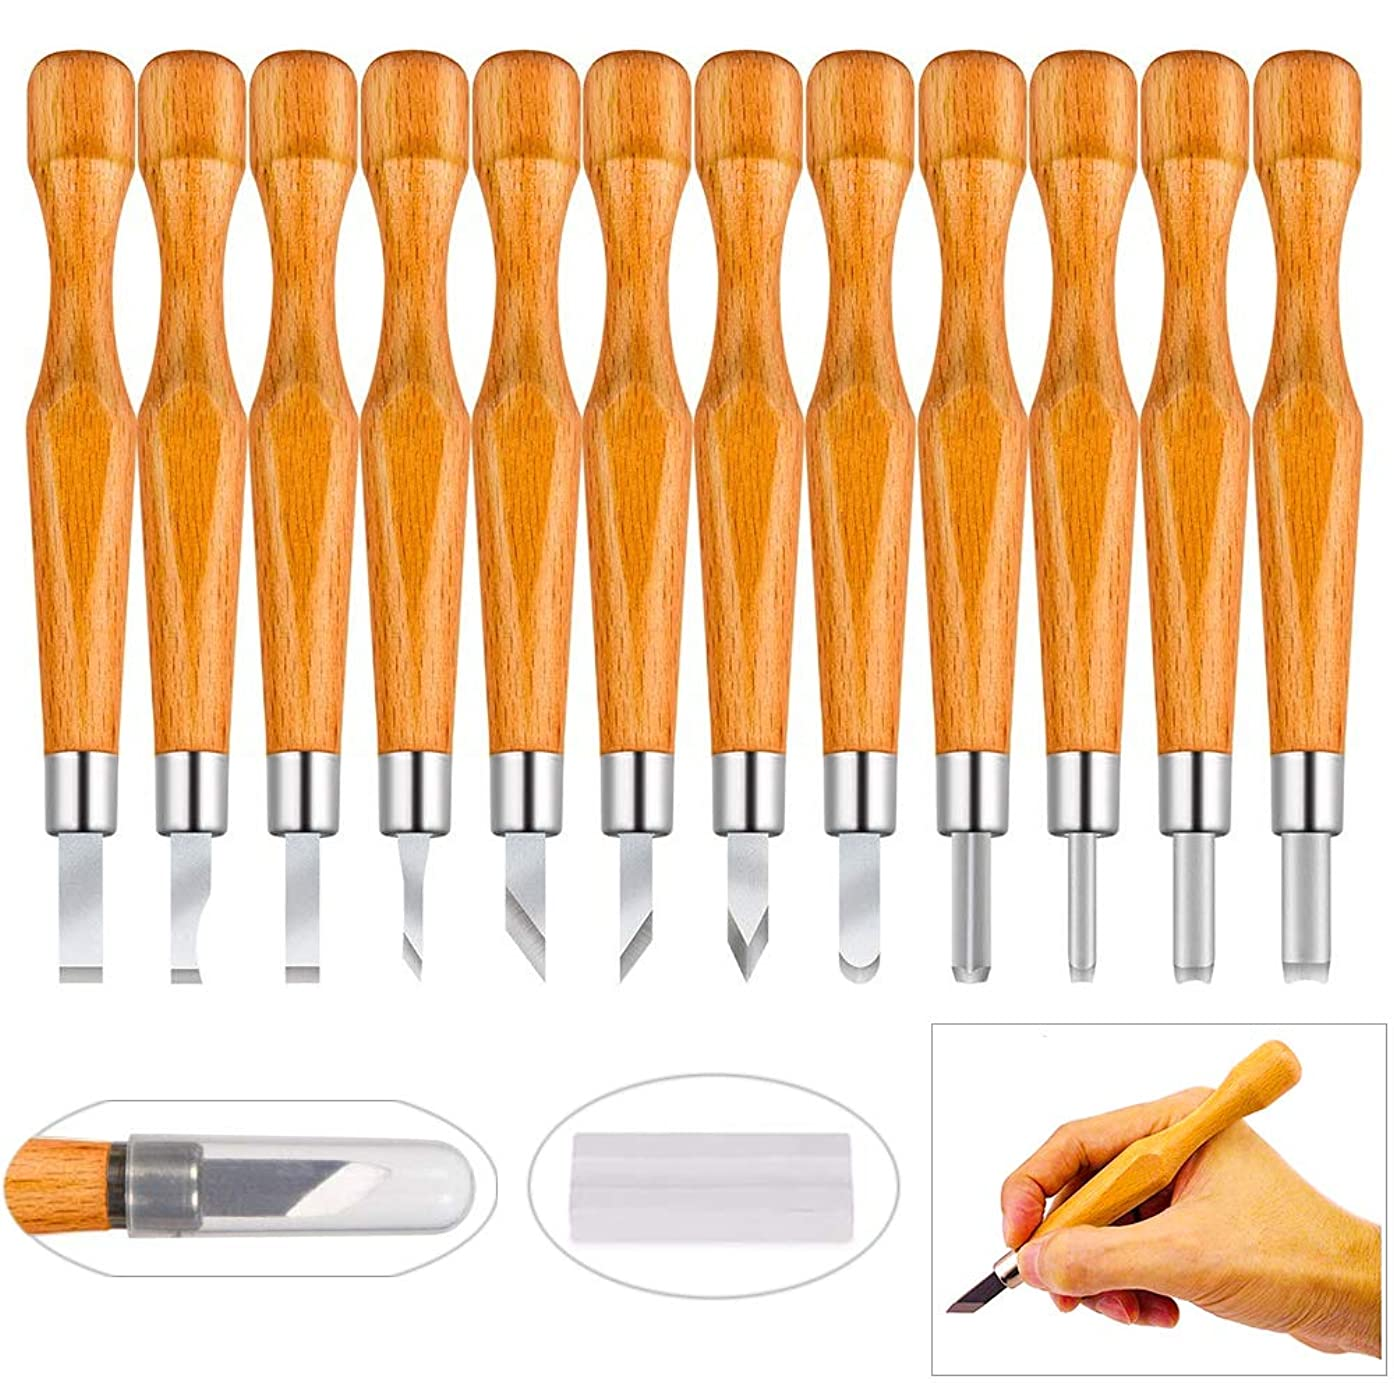 PRUGNA Hardwood Carving Tools Kit, AISI-07 Carbon Steel Graver Set for Beginners & Professionals, 12 Pcs Engraving Knife with Storage Case